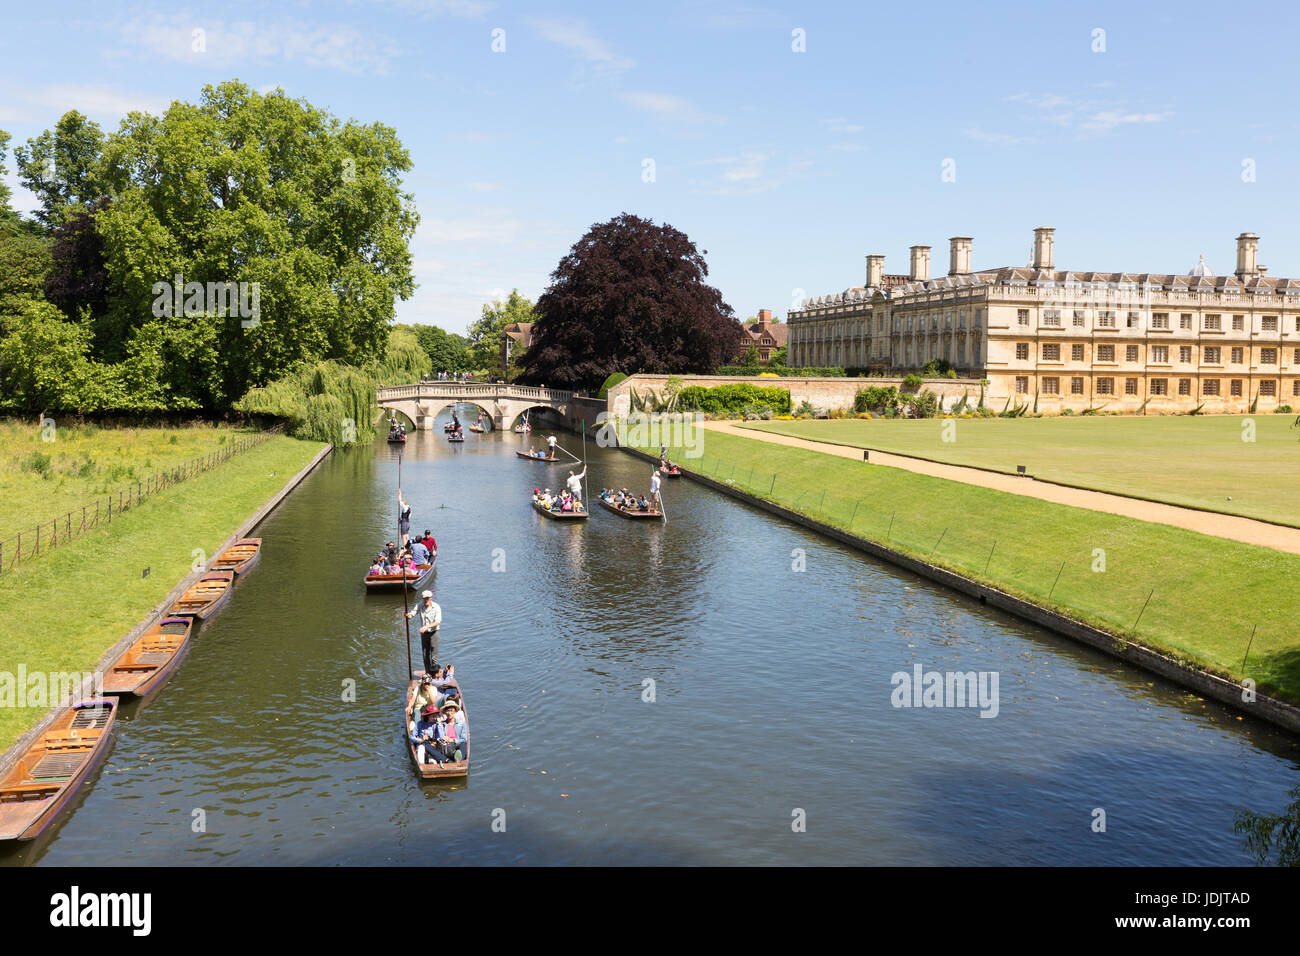 Punting Cambridge UK - punting in summer on the Backs, the River Cam, Cambridge England UK - Stock Image